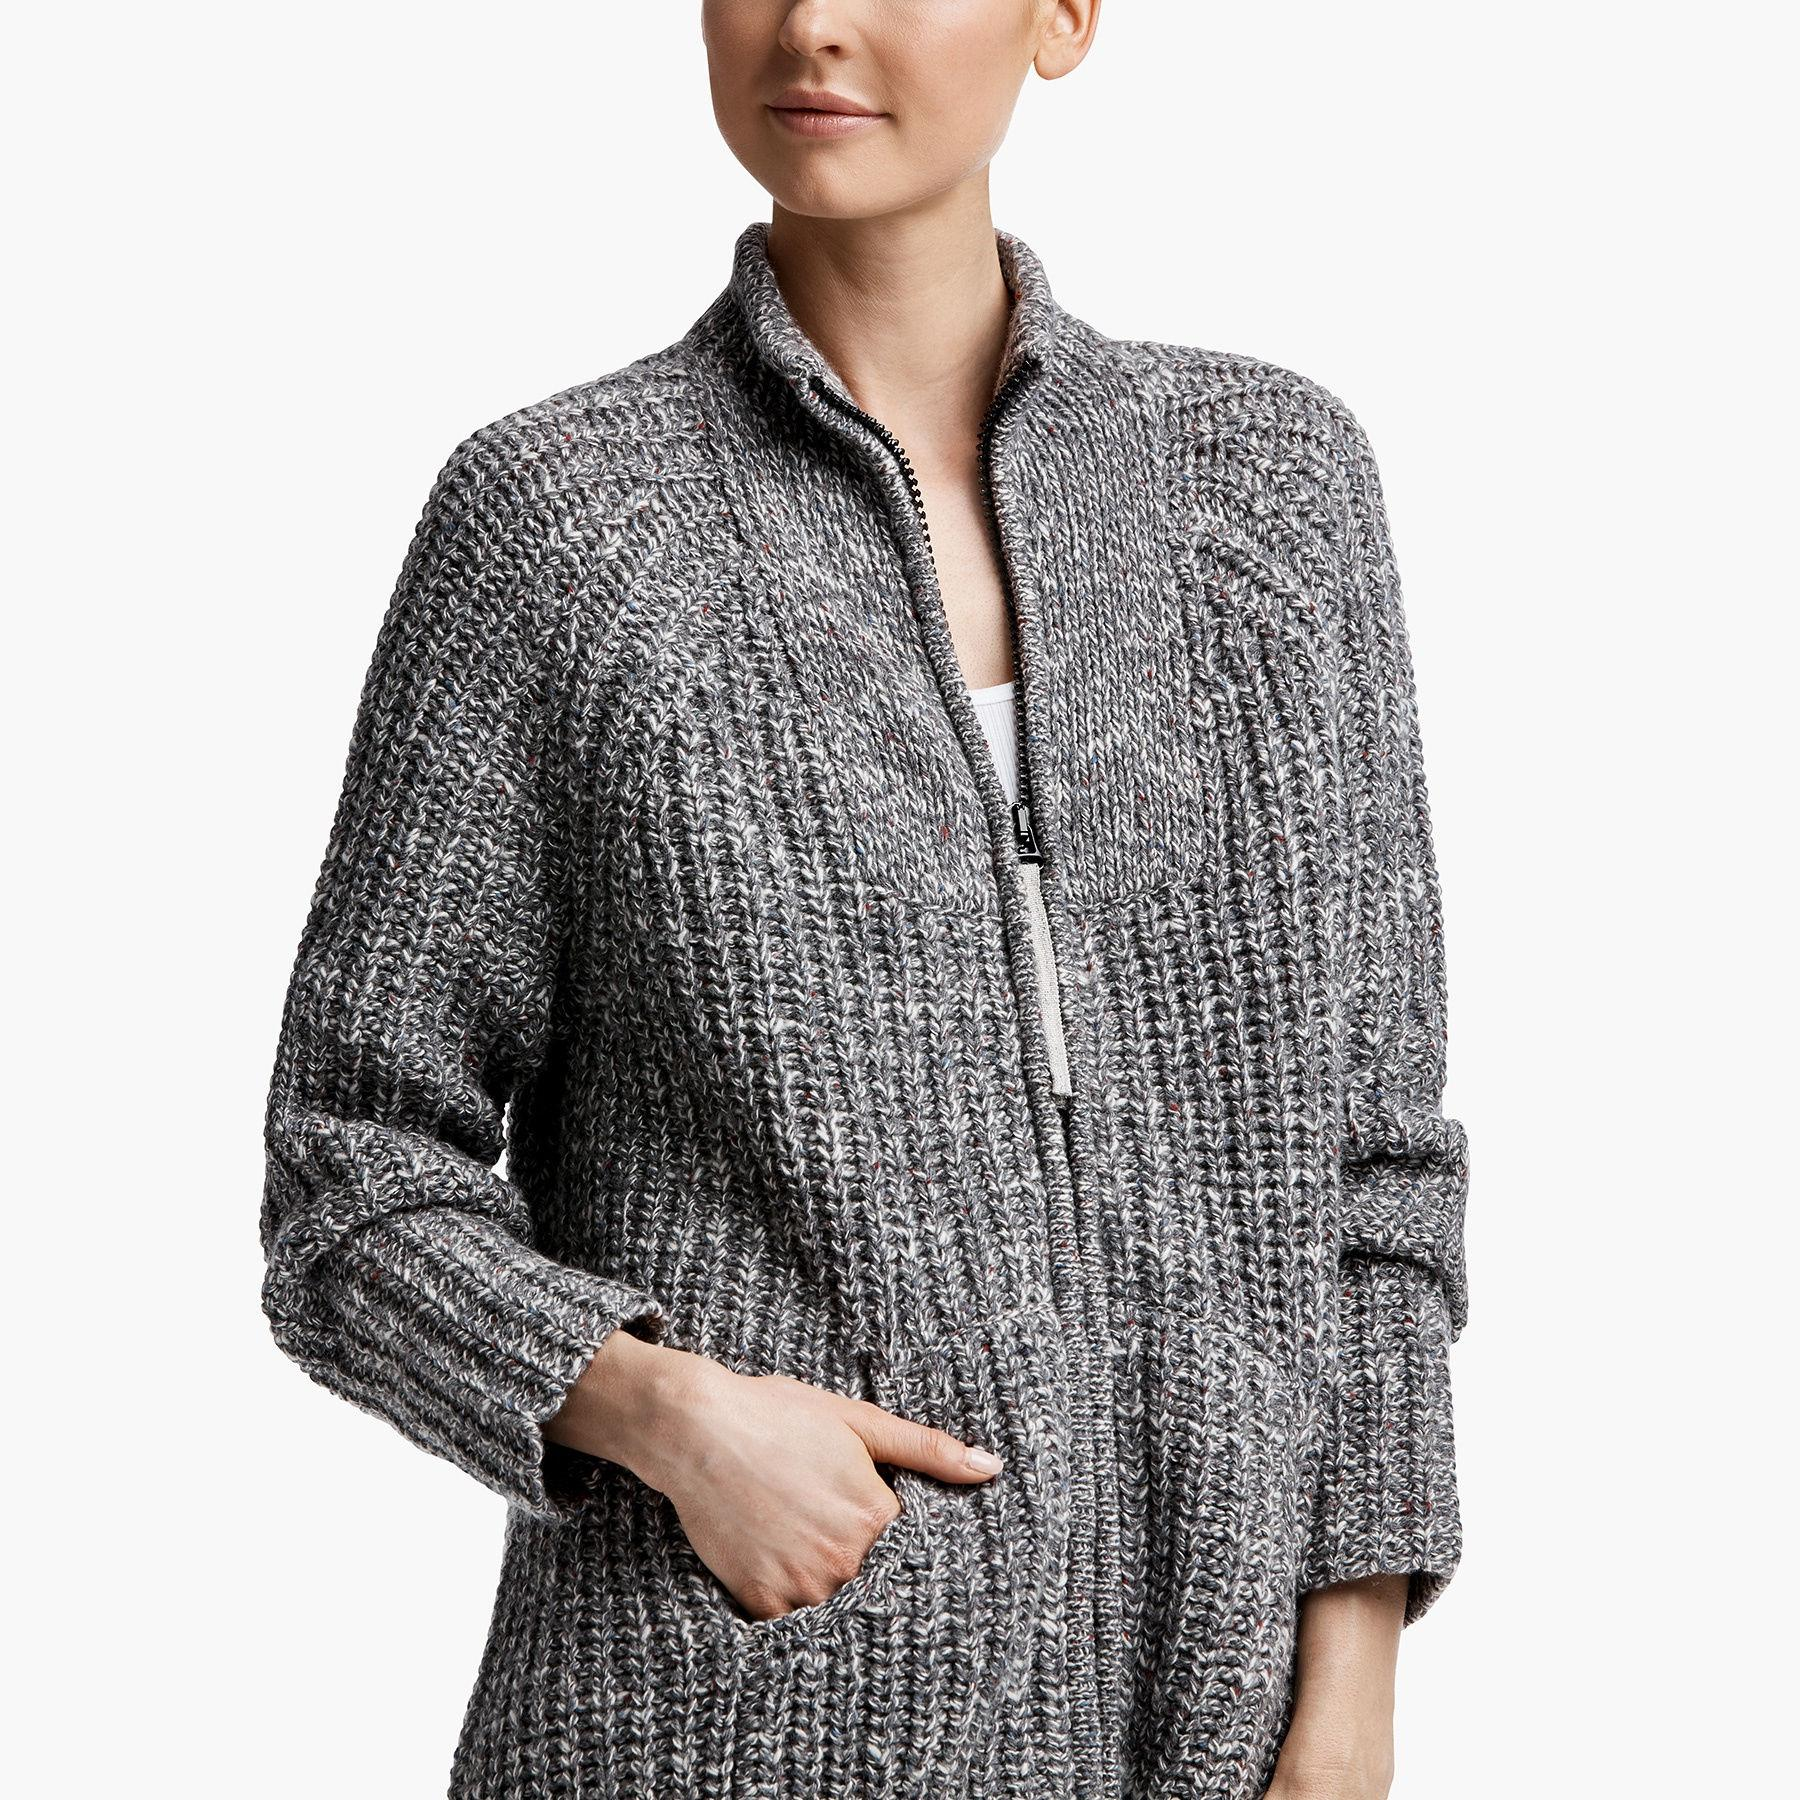 James Perse Wool Ribbed Zip-up Cardigan in Grey